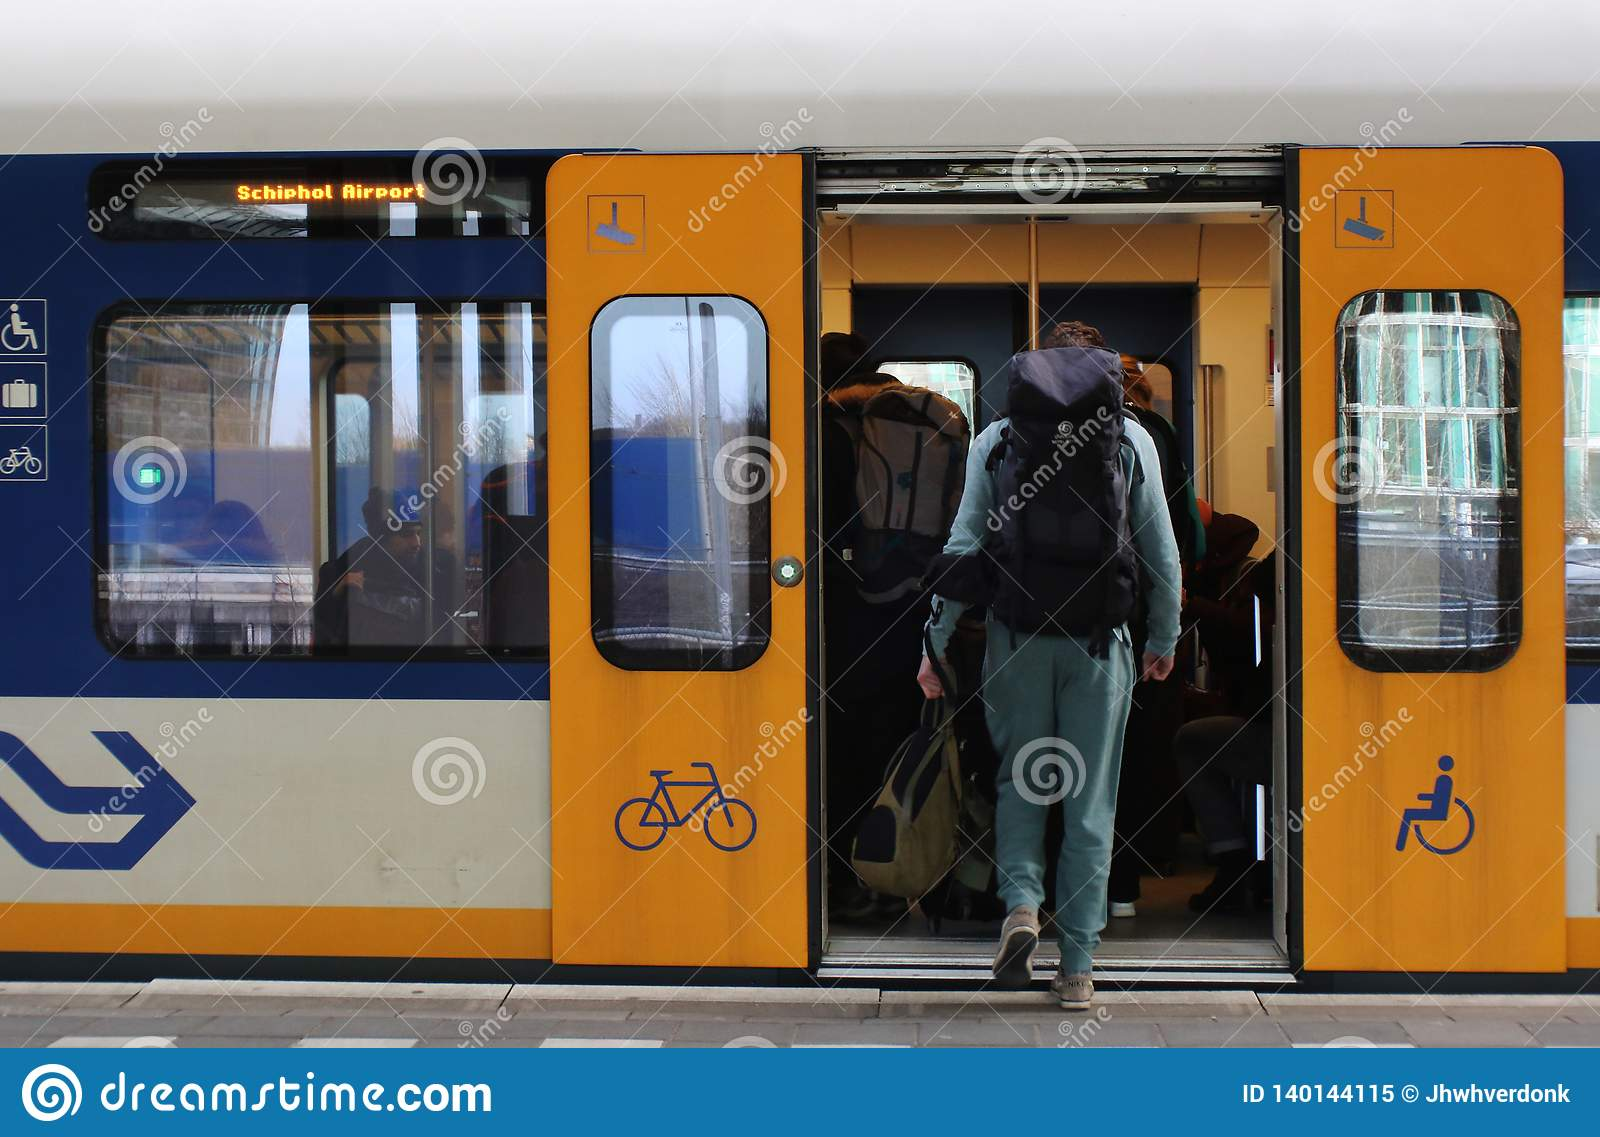 Utrecht, the Netherlands, February 15, 2019: A traveller with backback catching a train sprinter in the netherlands